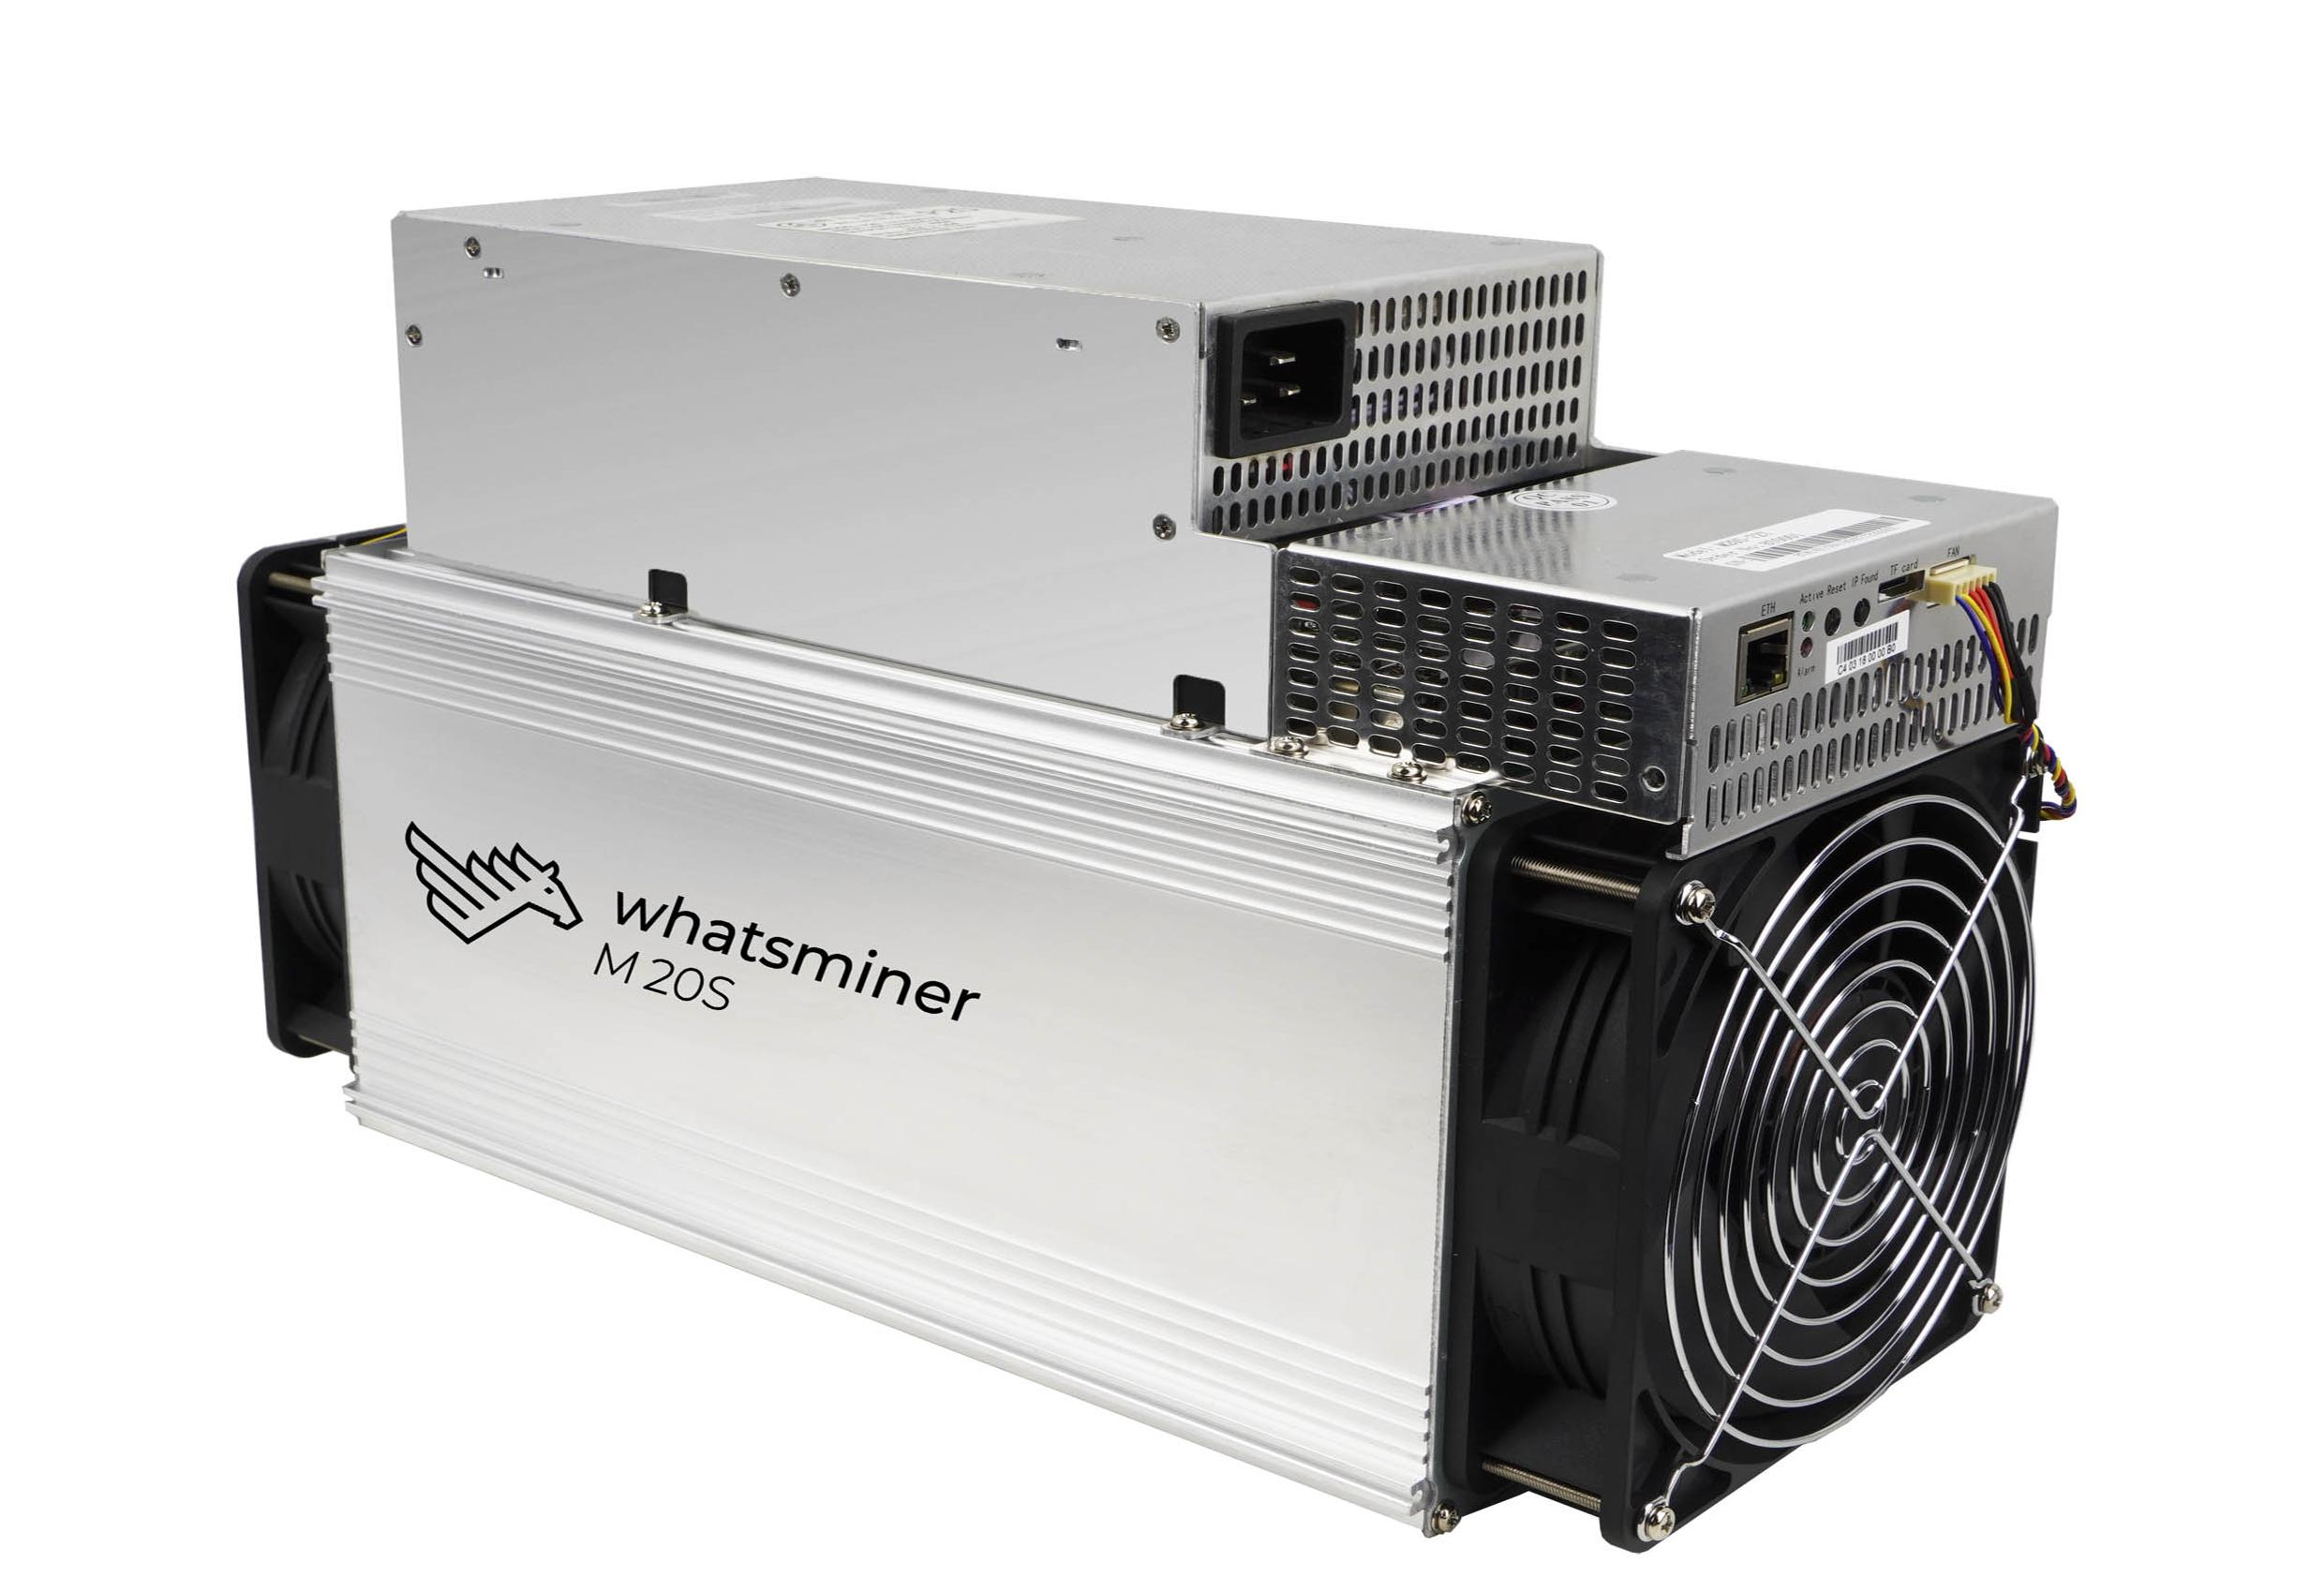 ASIC Whatsminer M20S 68 Th/s